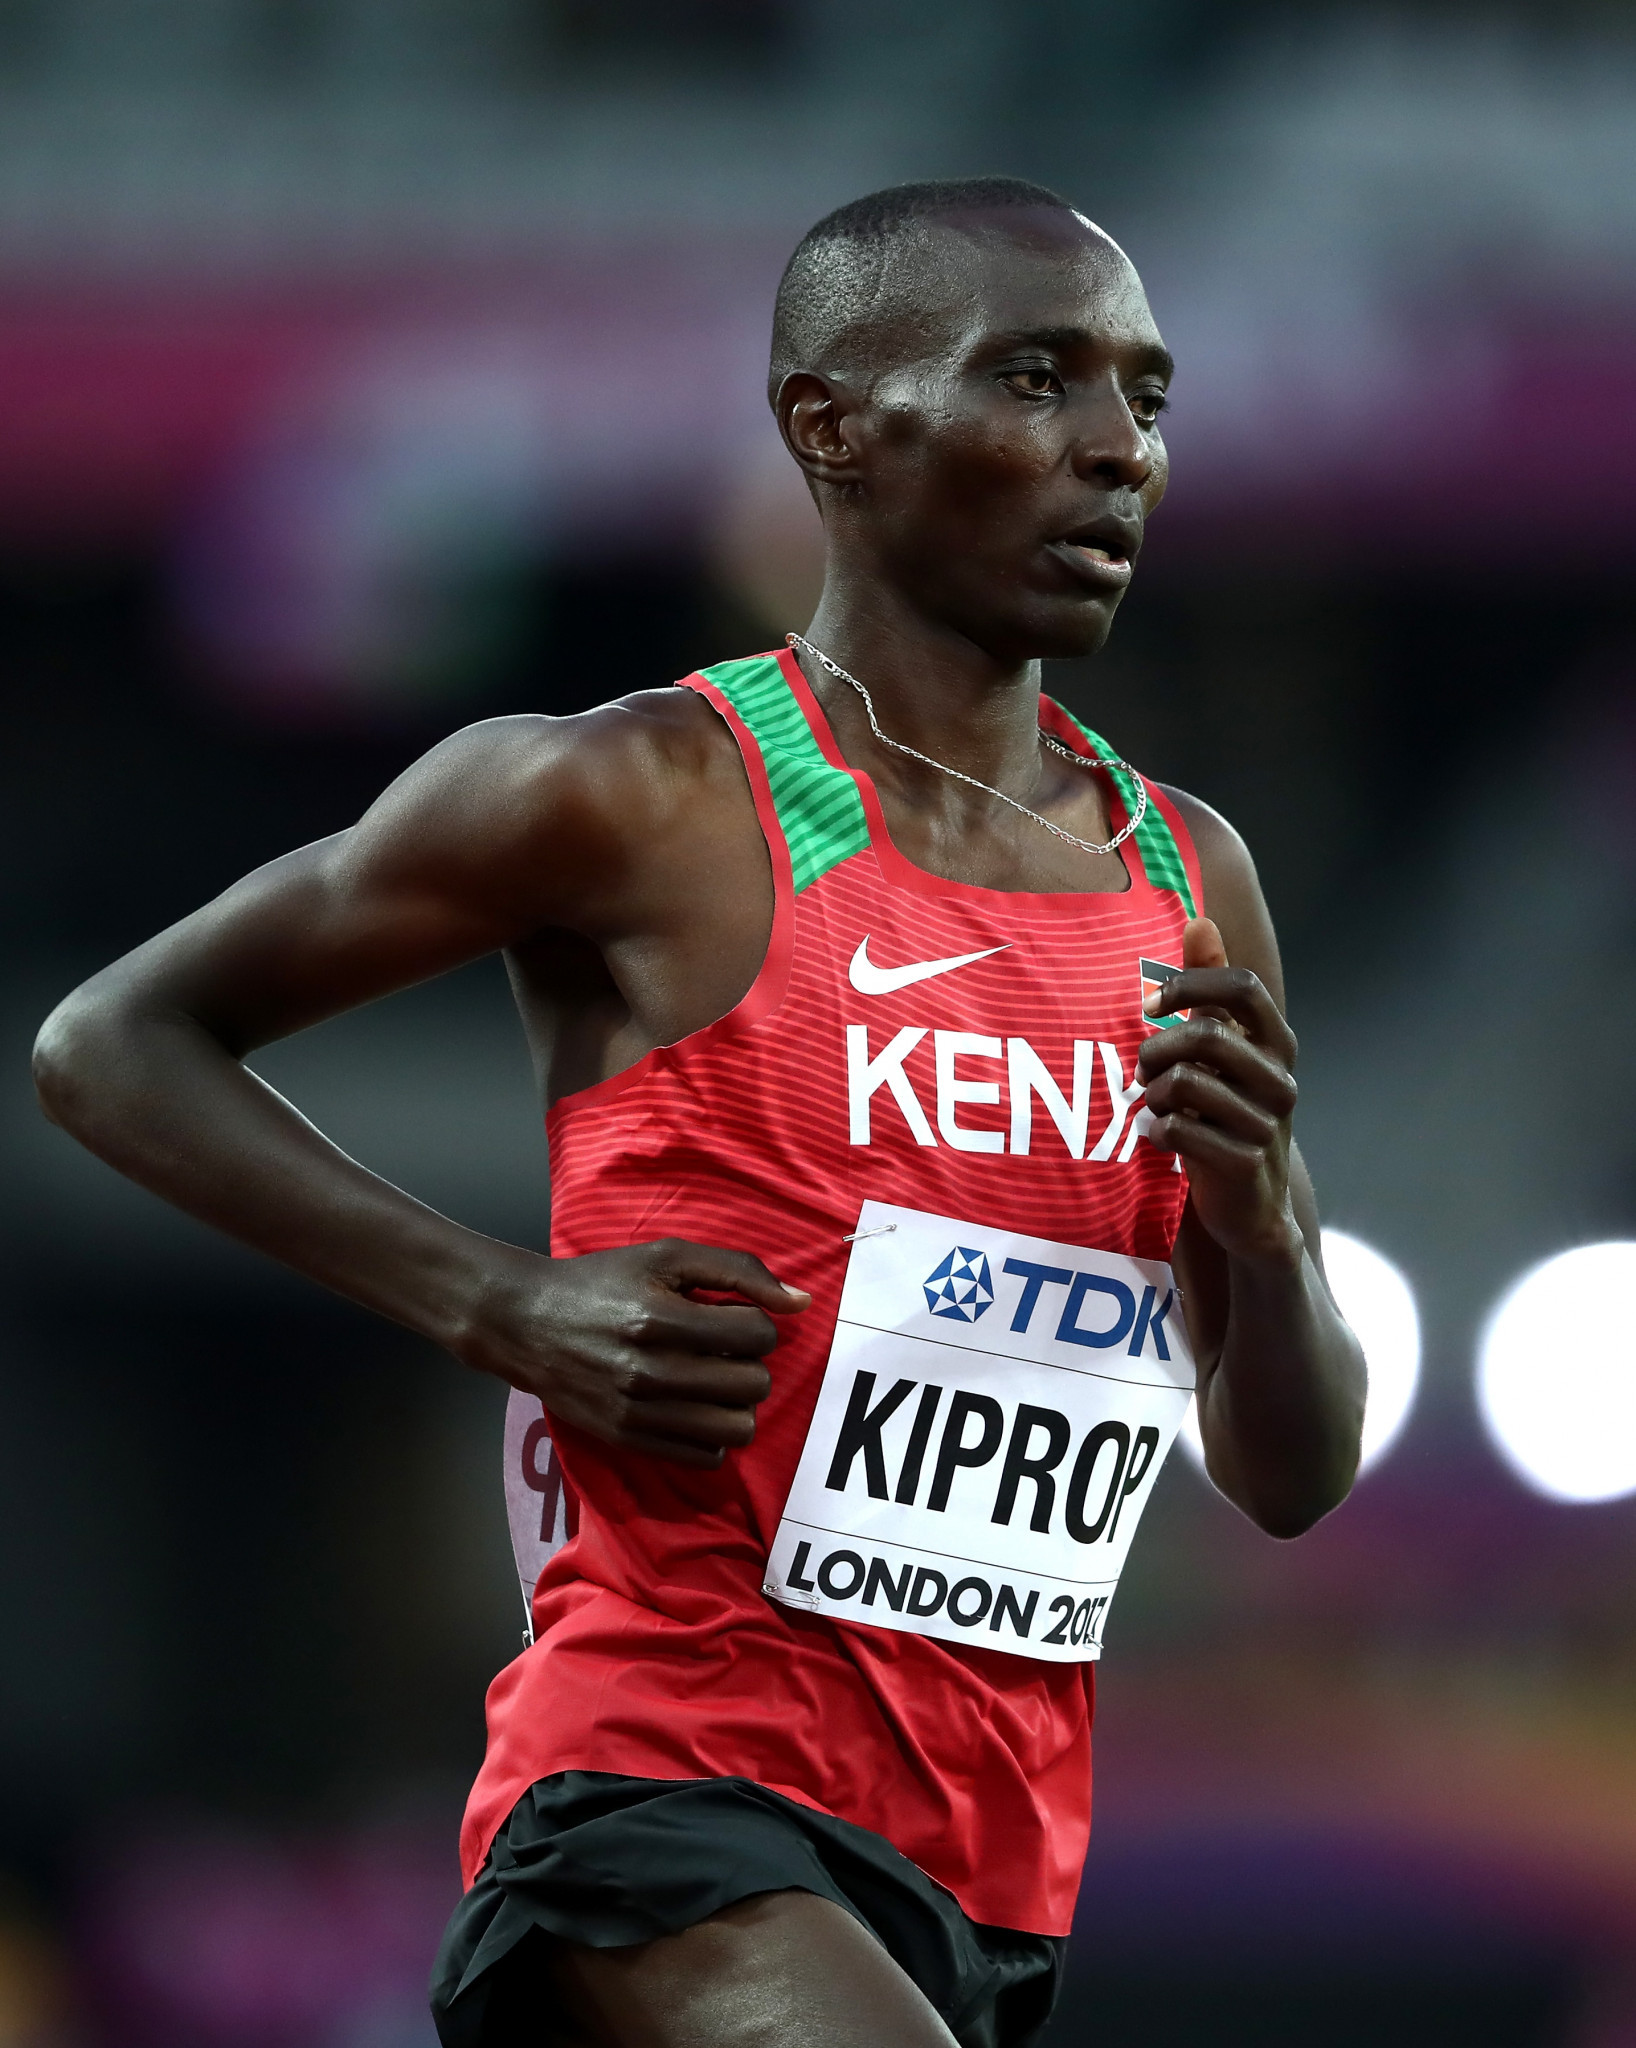 Former Olympic and world 1500m champion Asbel Kiprop is one of 50 top Kenyan runners to have tested positive for banned drugs - leading to athletes from country to be subject to stringent new regulations before major events ©Getty Images